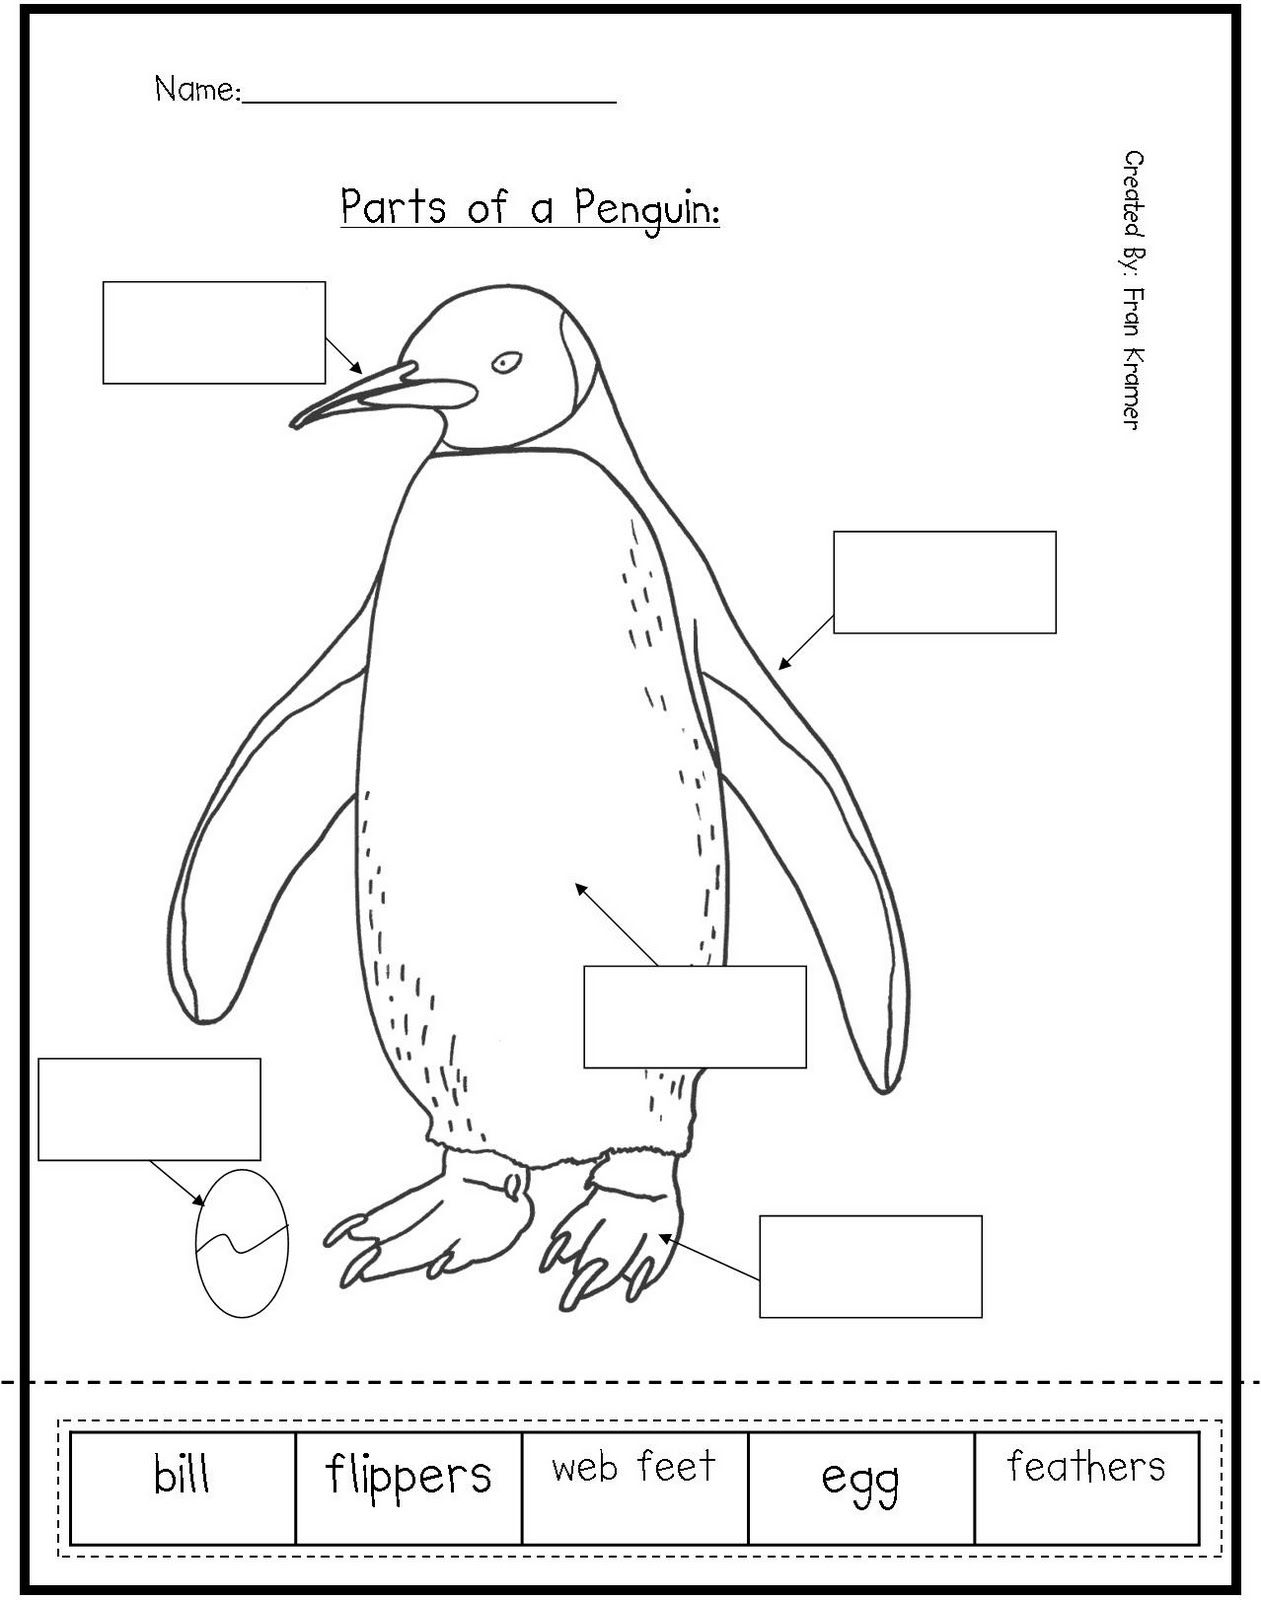 Coloring activities for 1st grade - Kindergarten Crayons Here Are Some Penguin Activities For Teachers